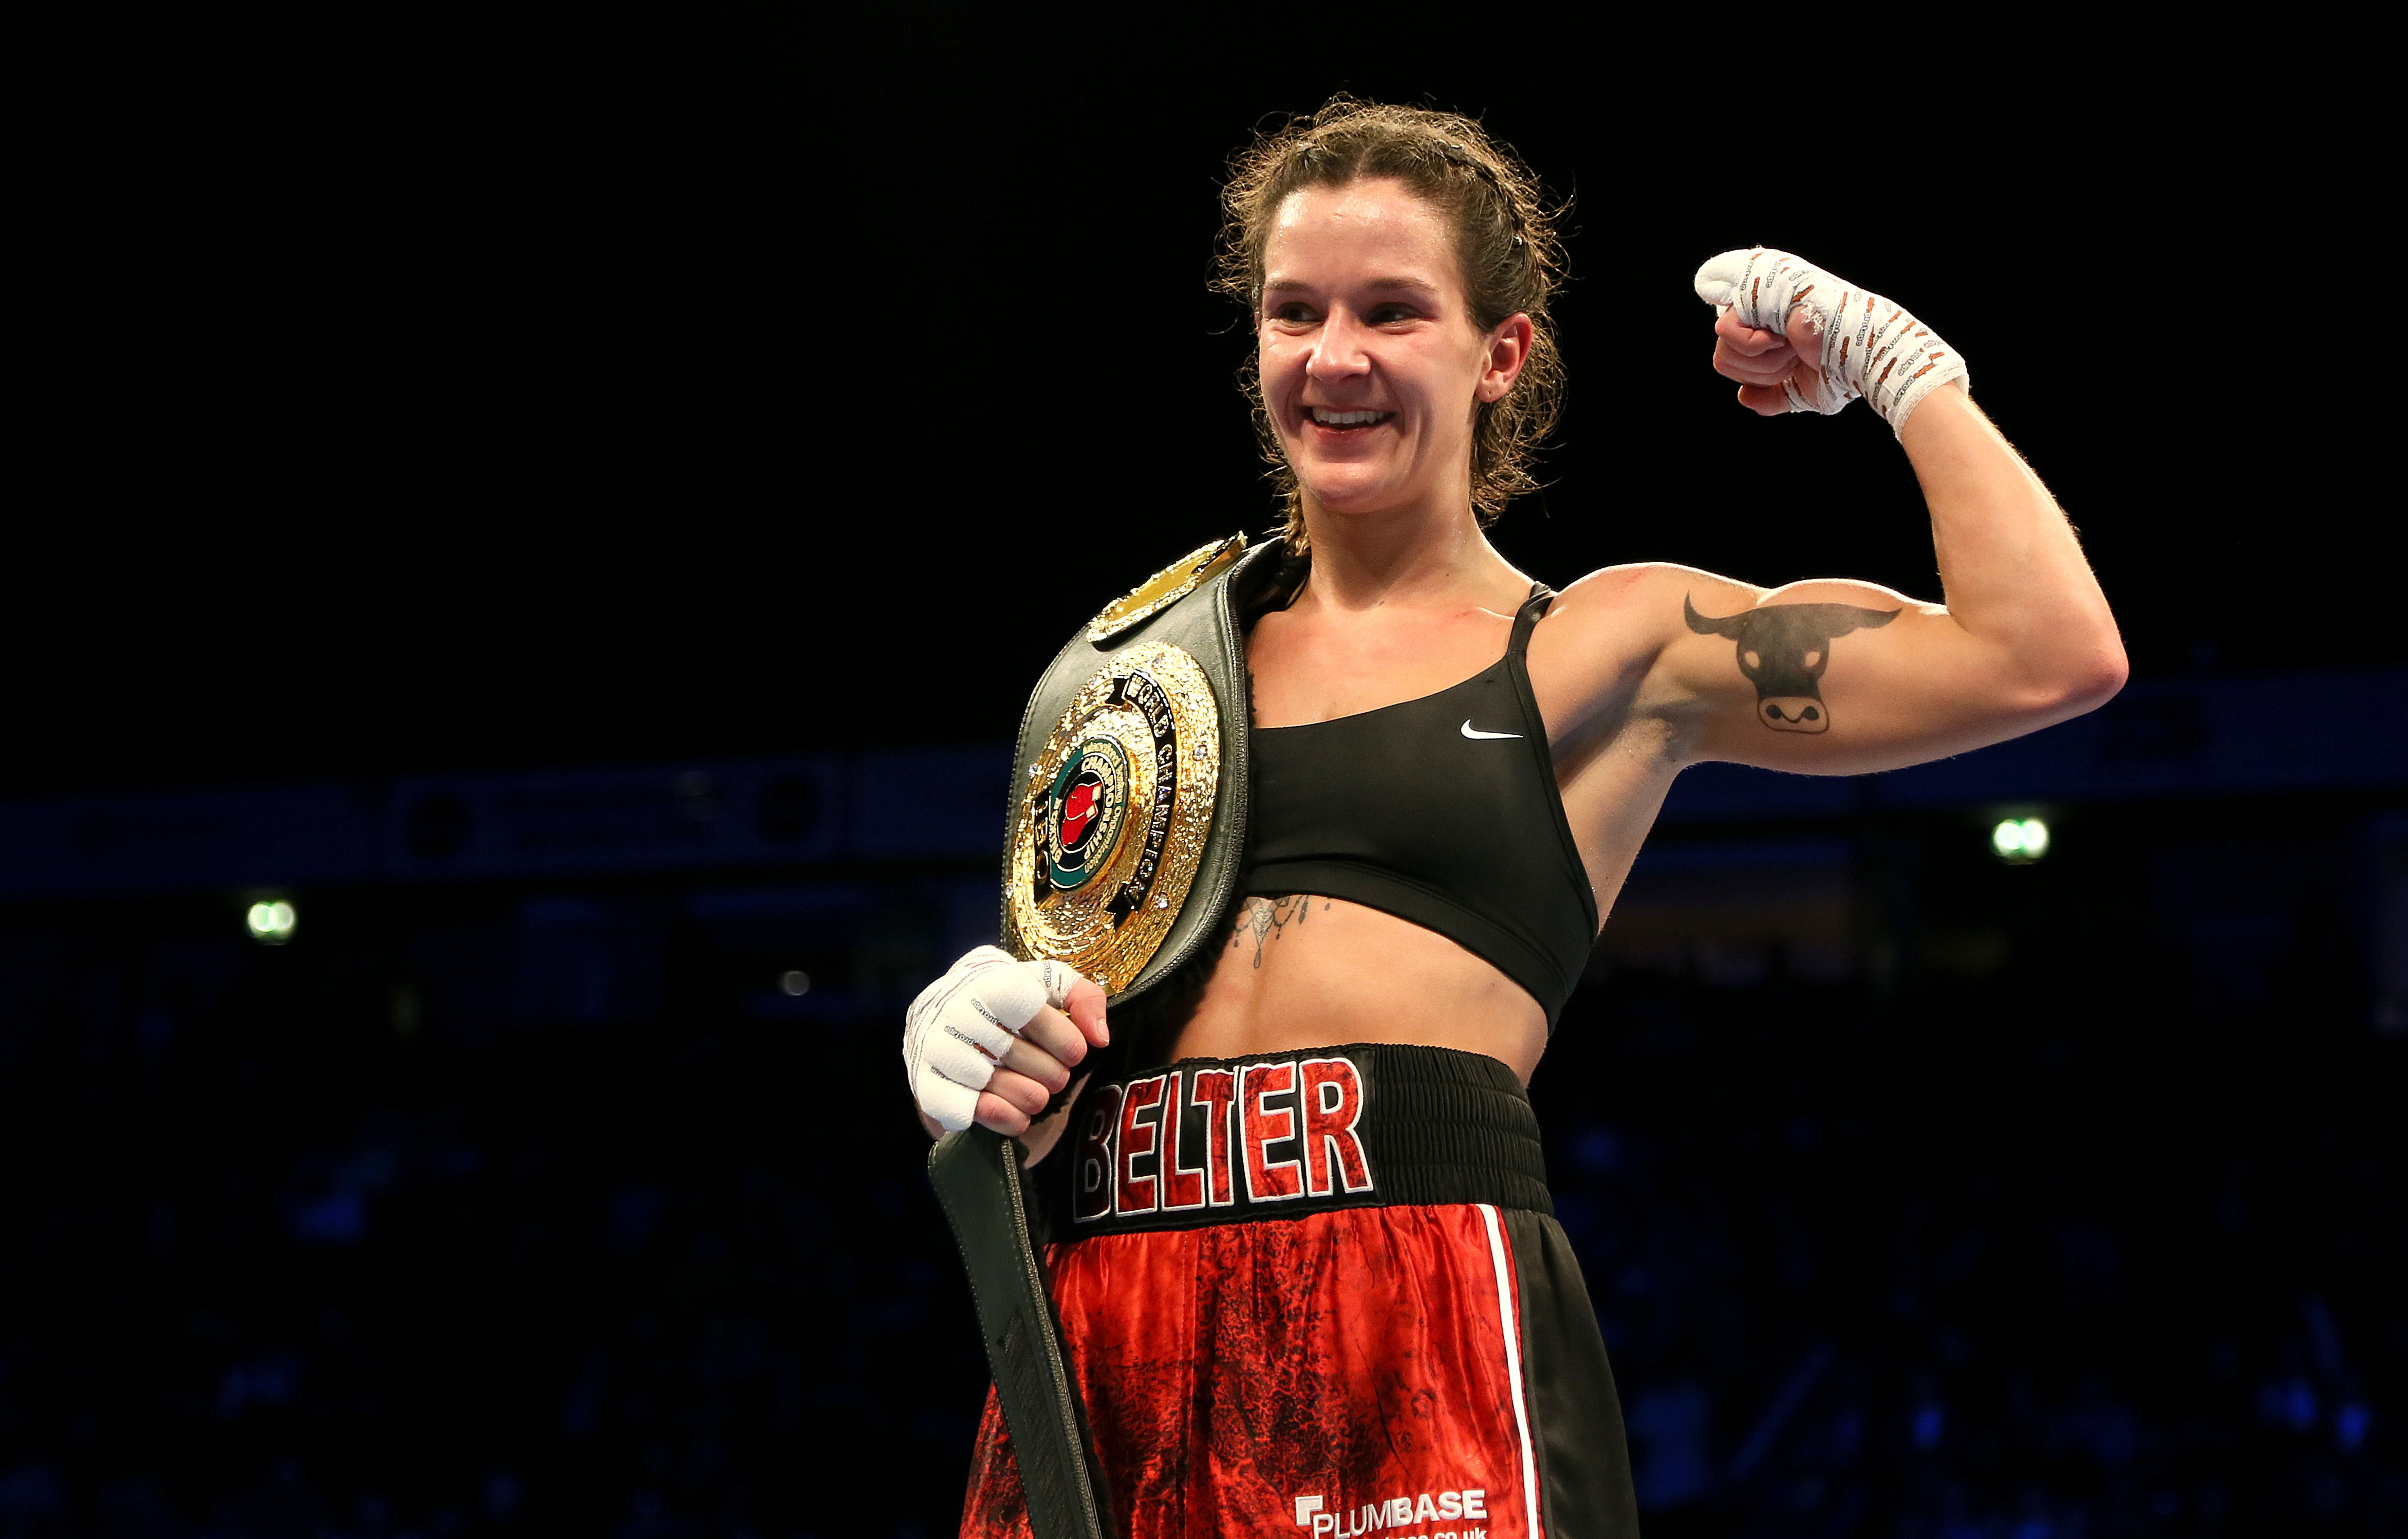 British boxer Terri Harper to fight Eva Wahlstrom for WBC Super Featherweight Title on Kell Brook undercard in Sheffield